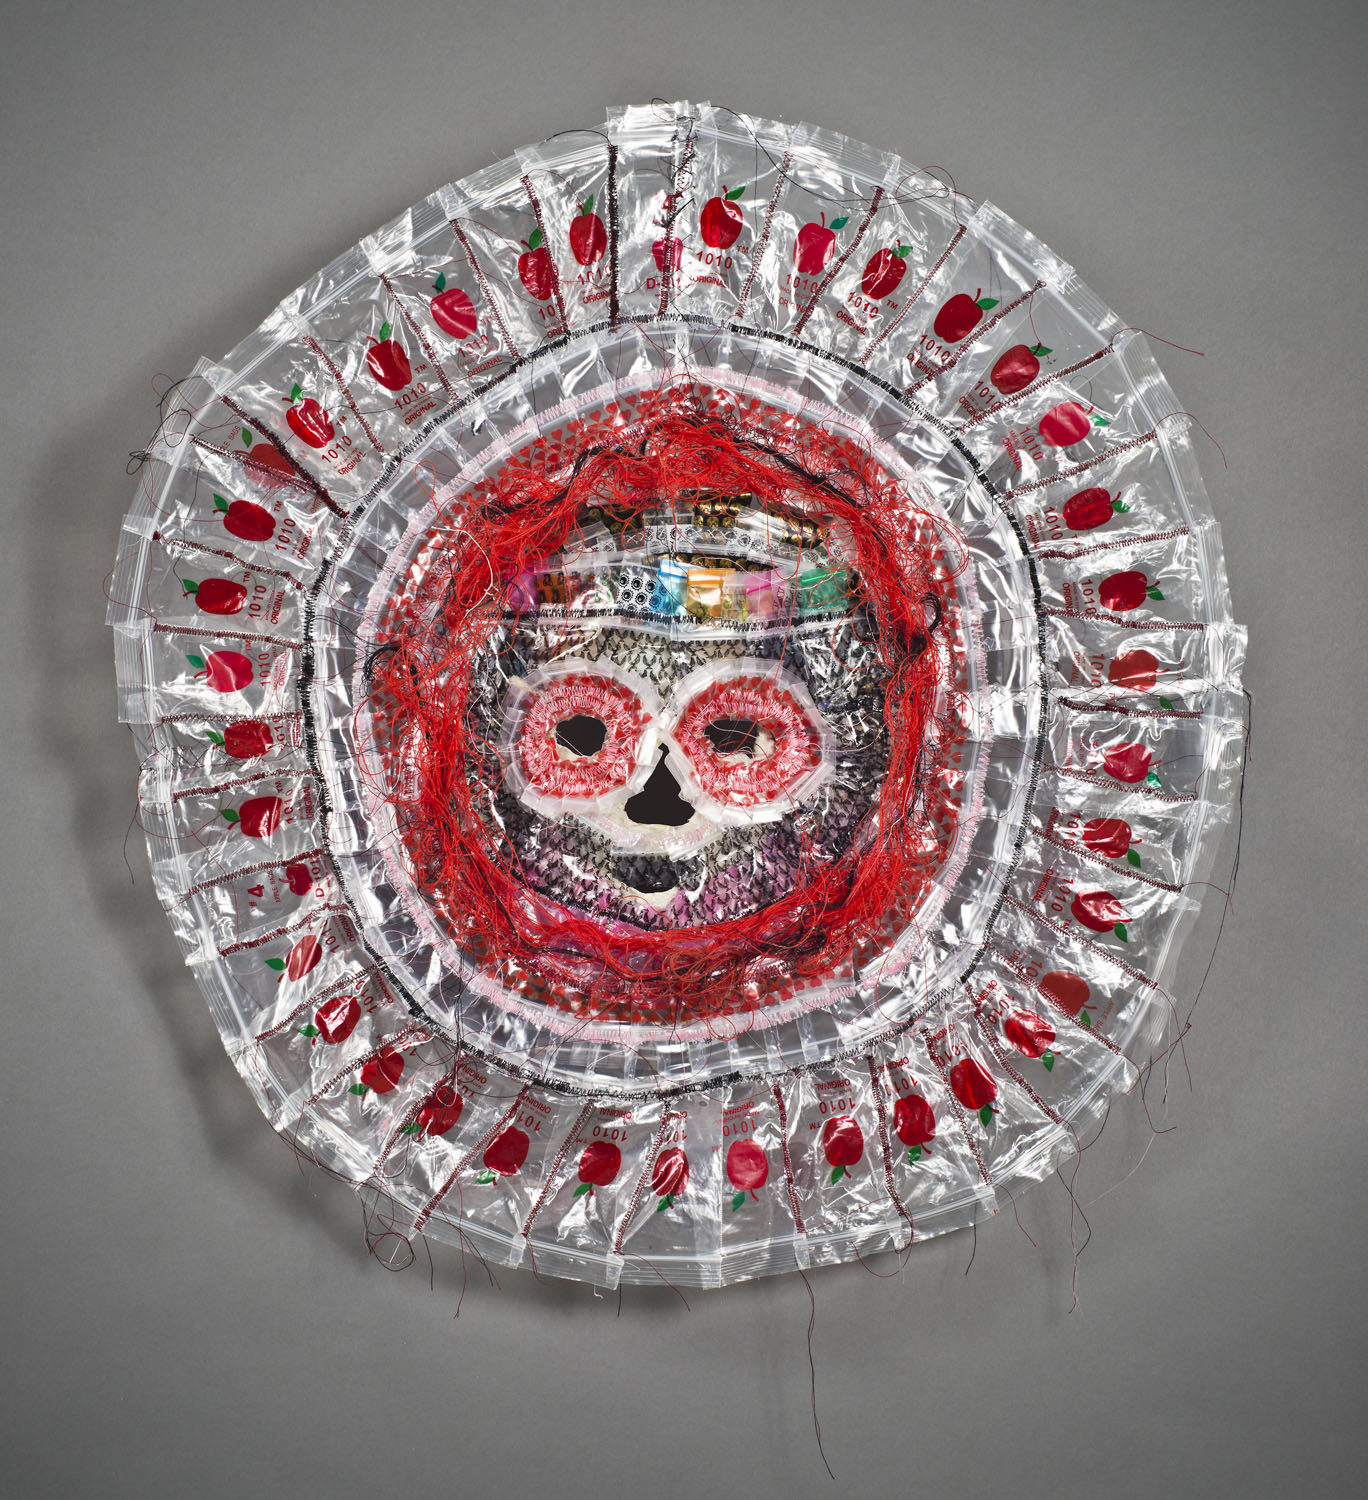 Plastic Mala Death Mask